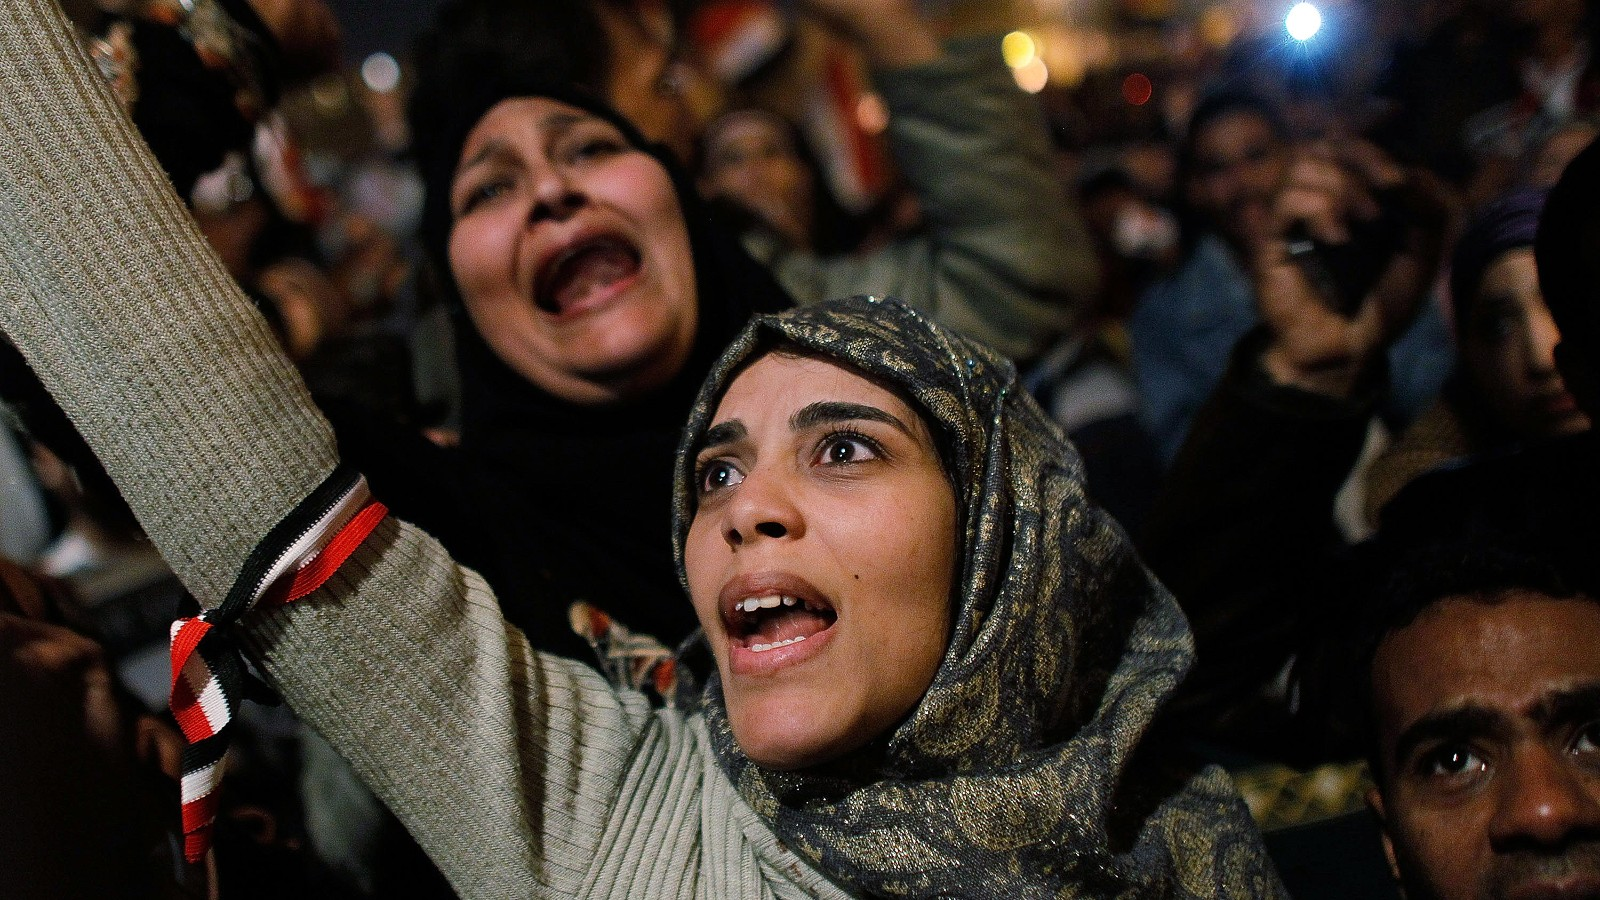 Hope In Middle East >> Egypt's road after Arab Spring: From hope to chaos - CNN